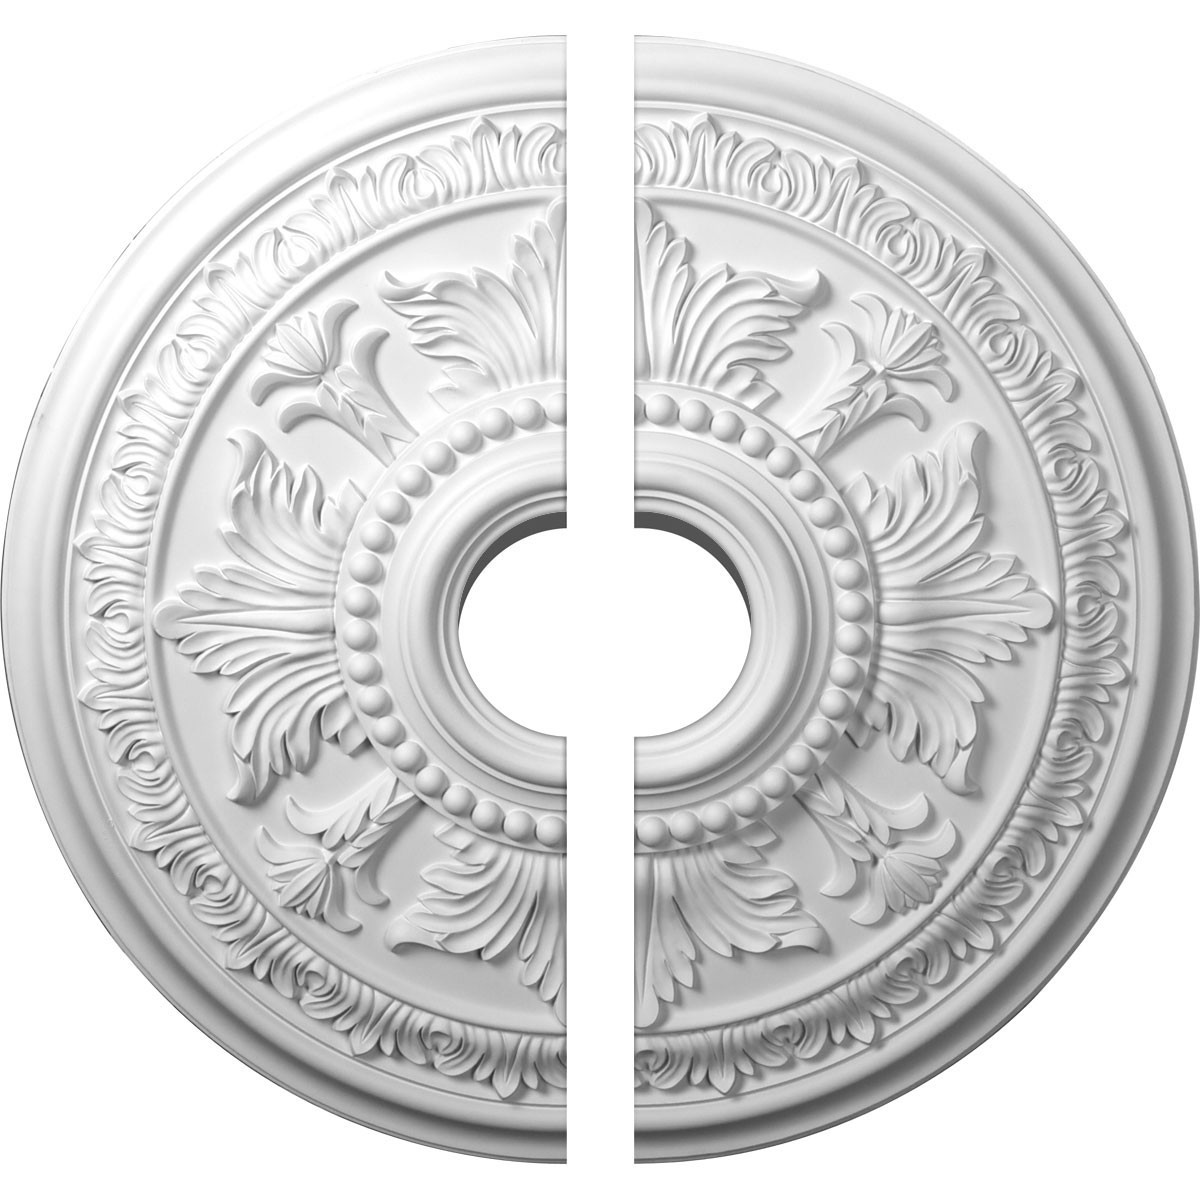 """EM-CM30TE2-06000 - 30 5/8""""OD x 6""""ID x 2 1/2""""P Tellson Ceiling Medallion, Two Piece (Fits Canopies up to 6 3/4"""")"""